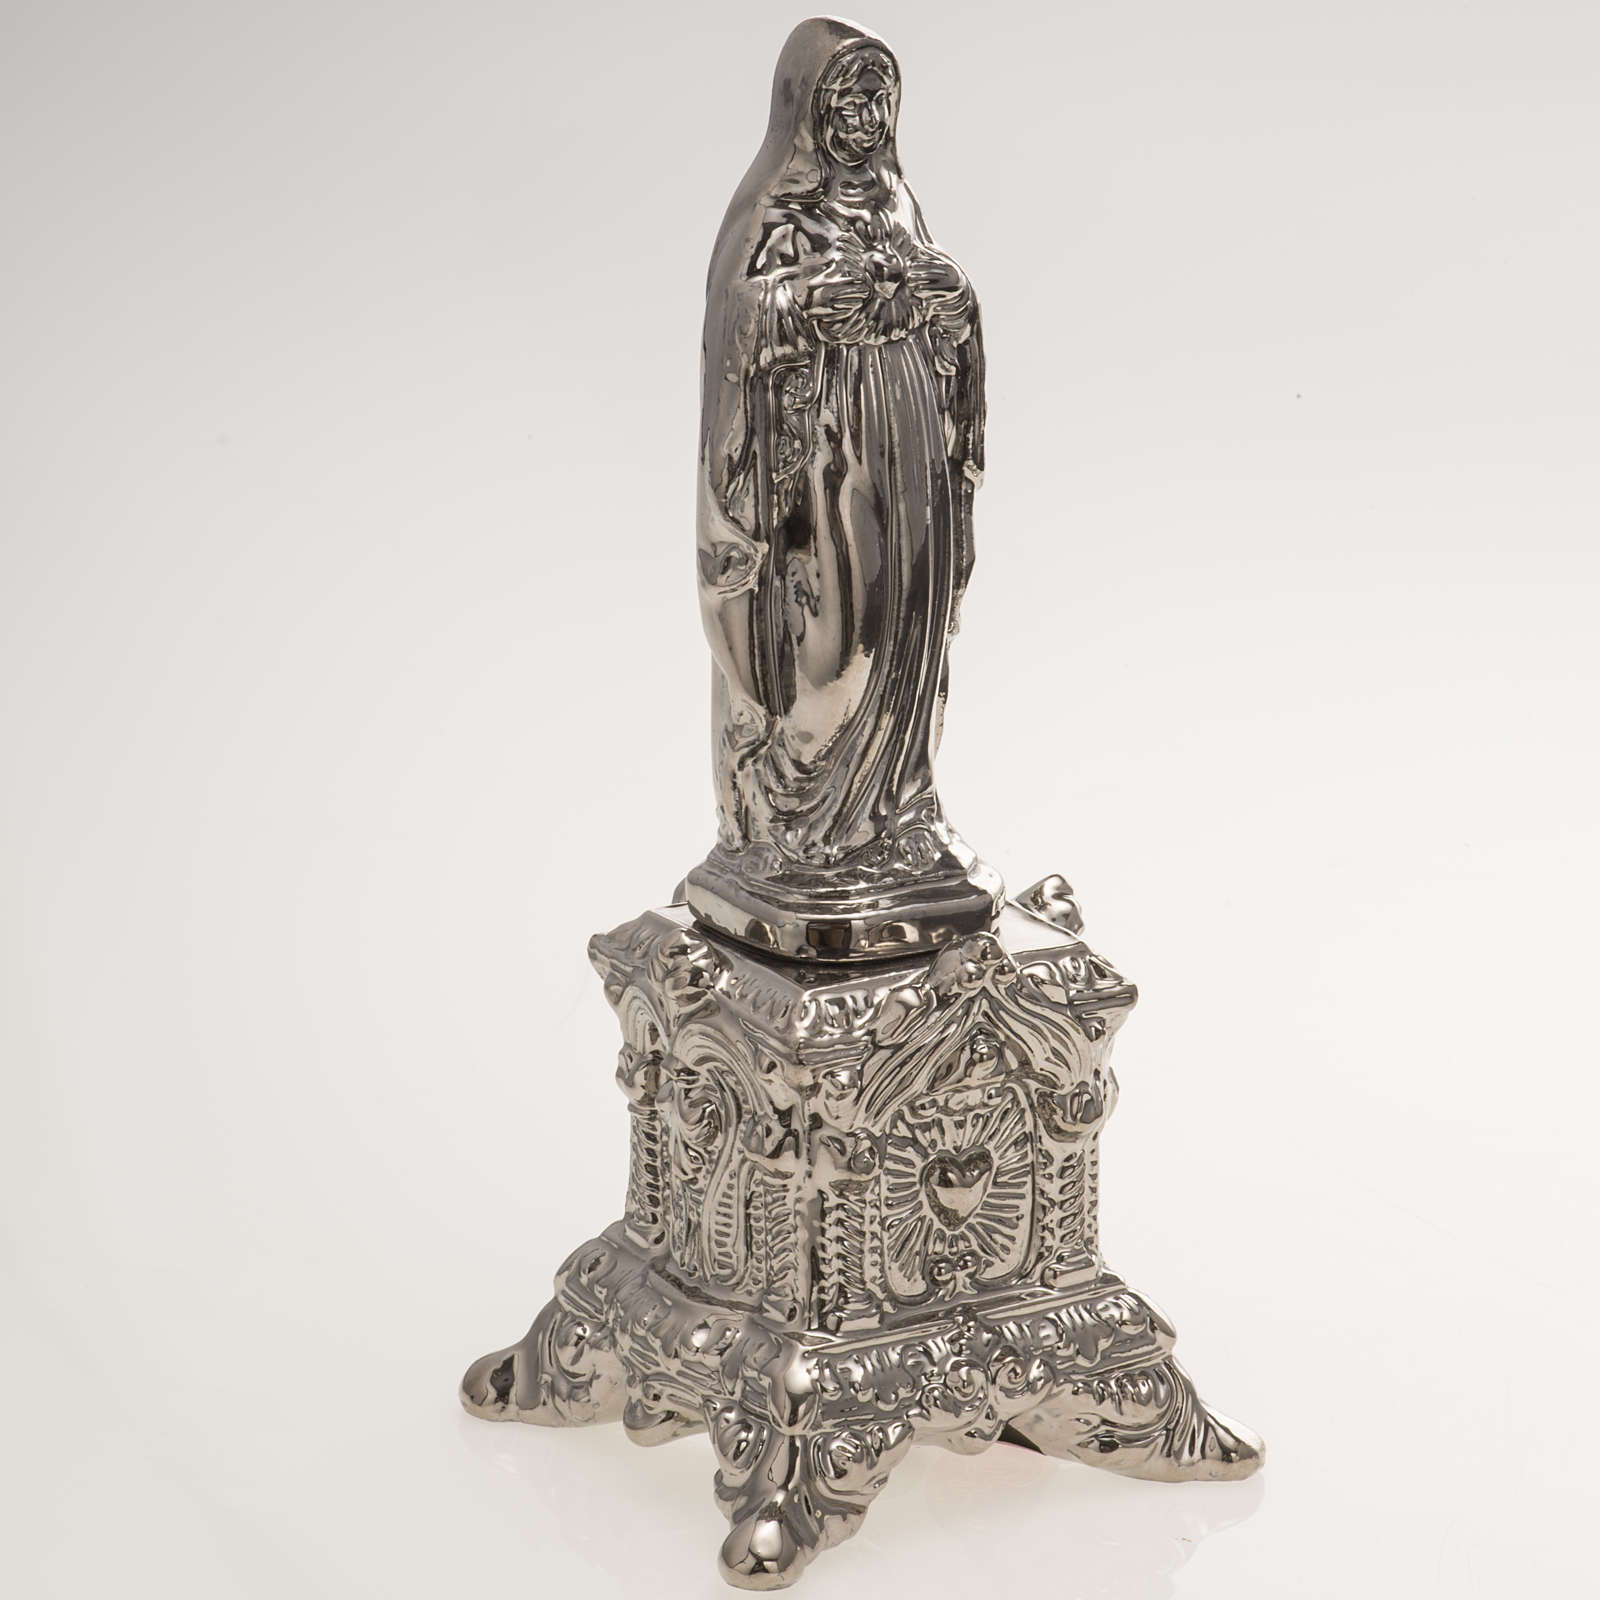 Ceramic statue, platinum colour, Sacred Heart of Mary on throne 4